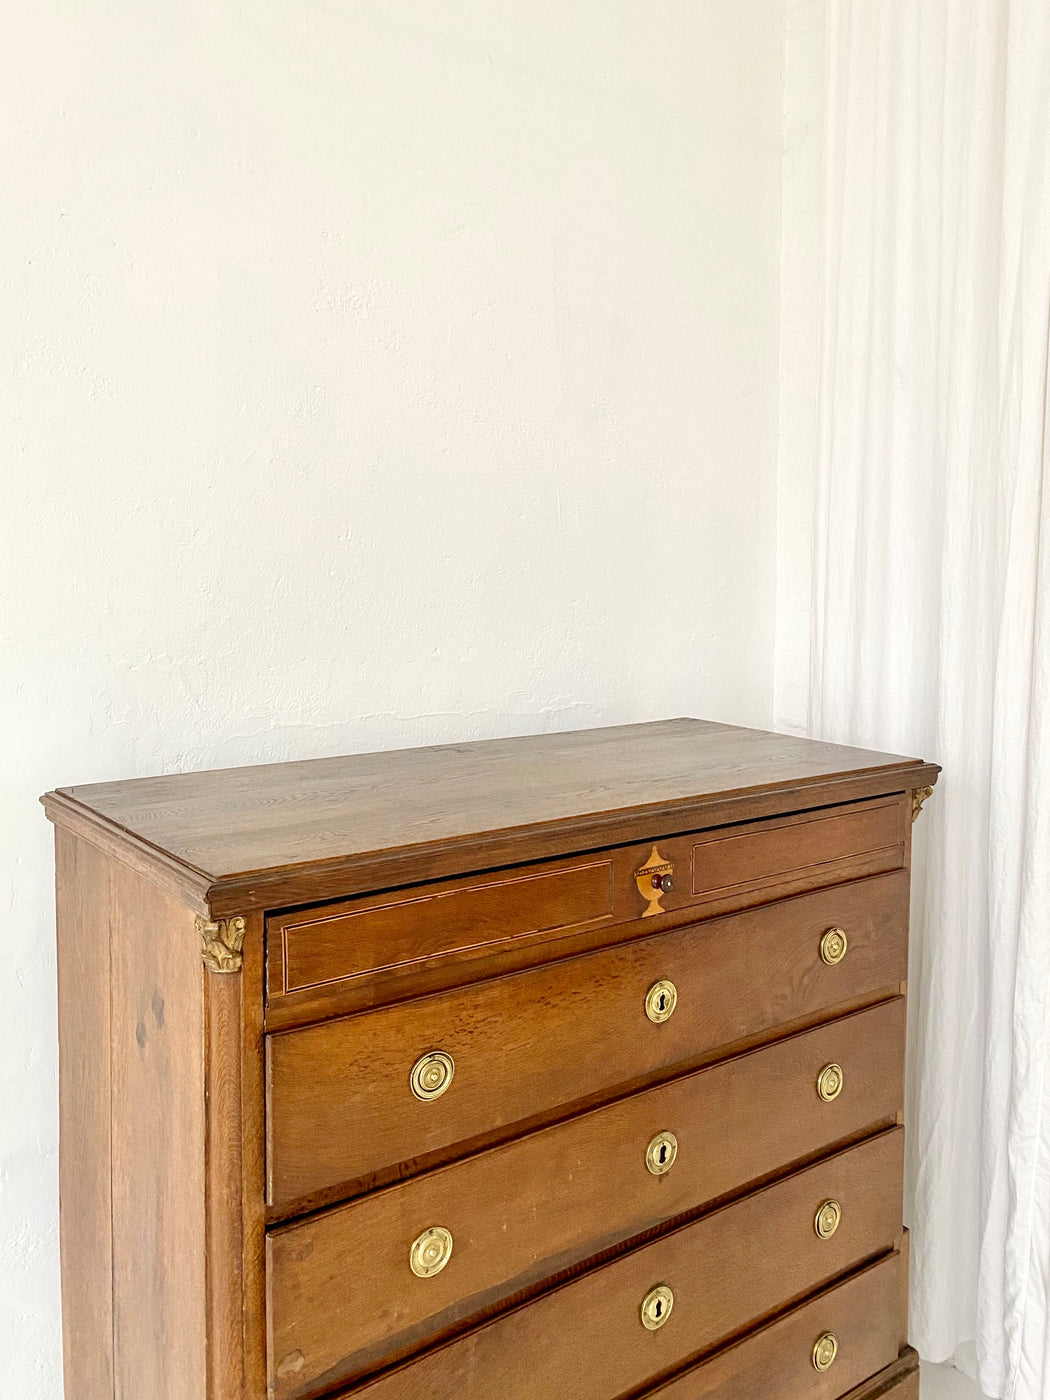 Antique European Oak Chest of Drawers